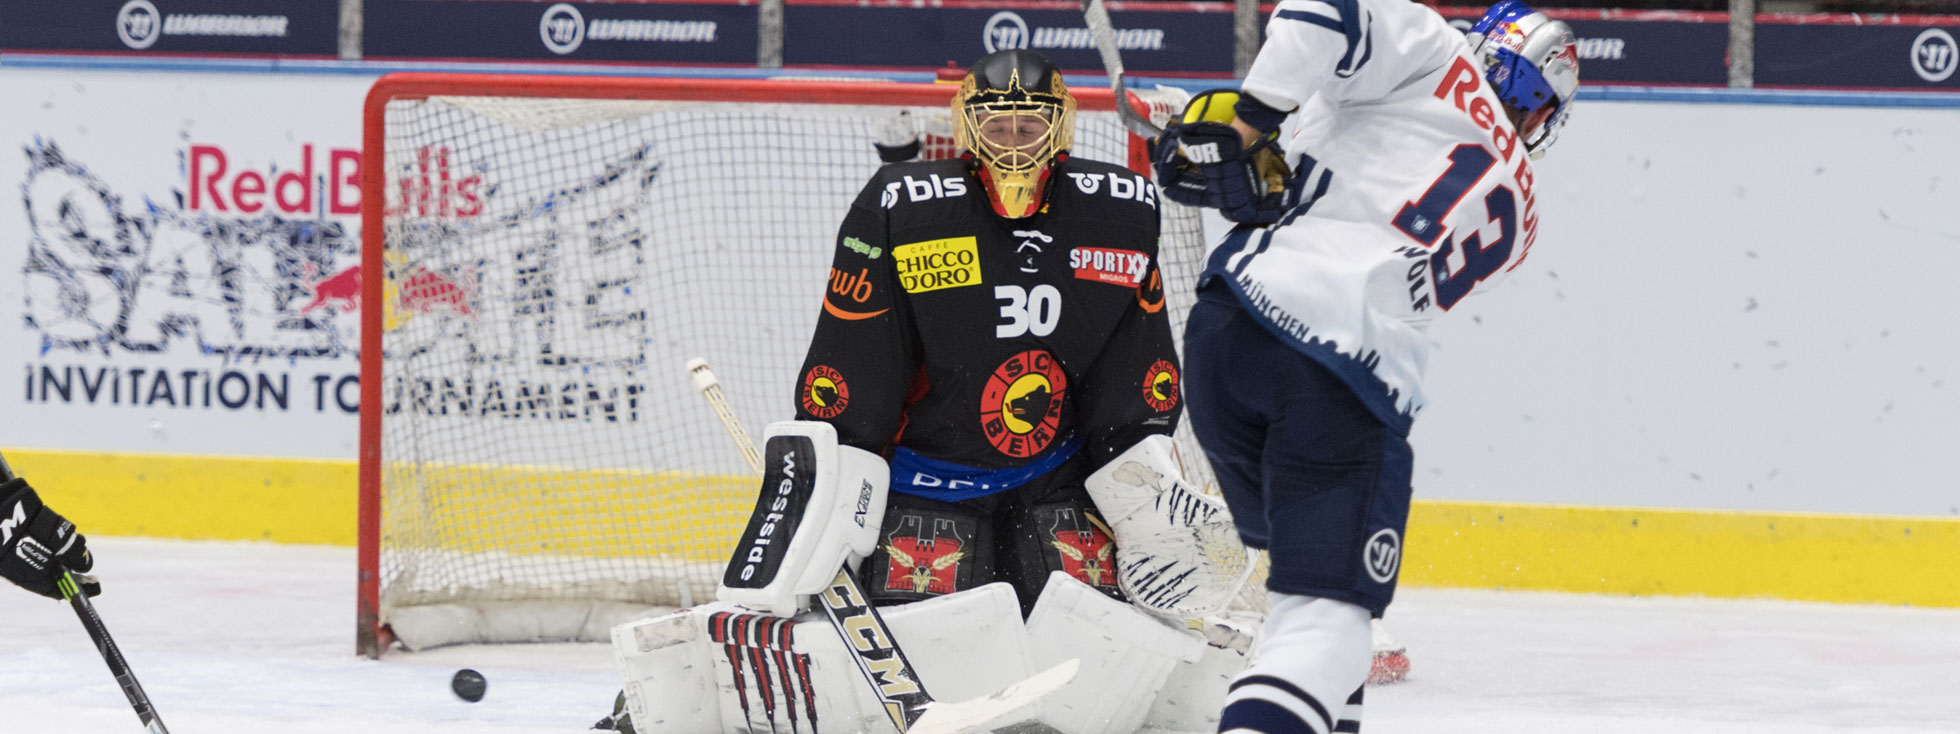 ehc münchen red bull